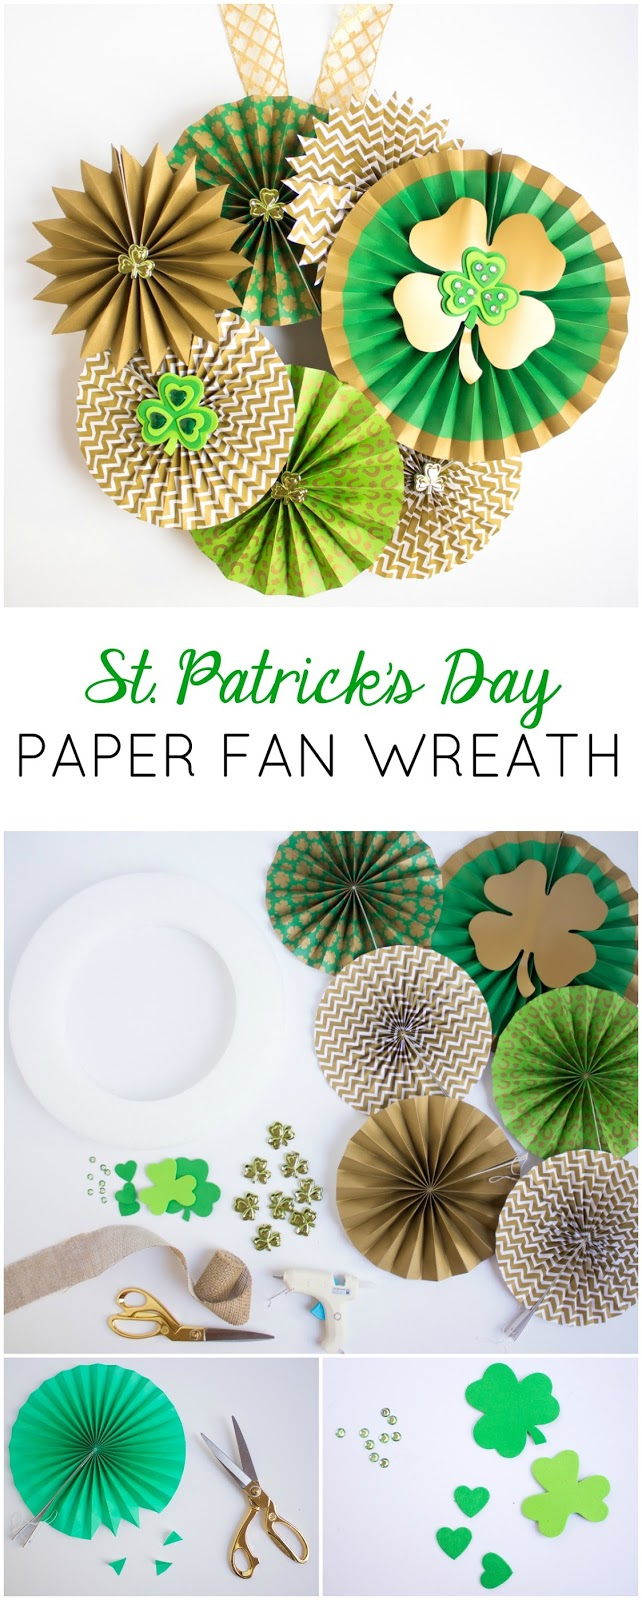 The prettiest St. Patrick's Day shamrock wreath you ever did see!